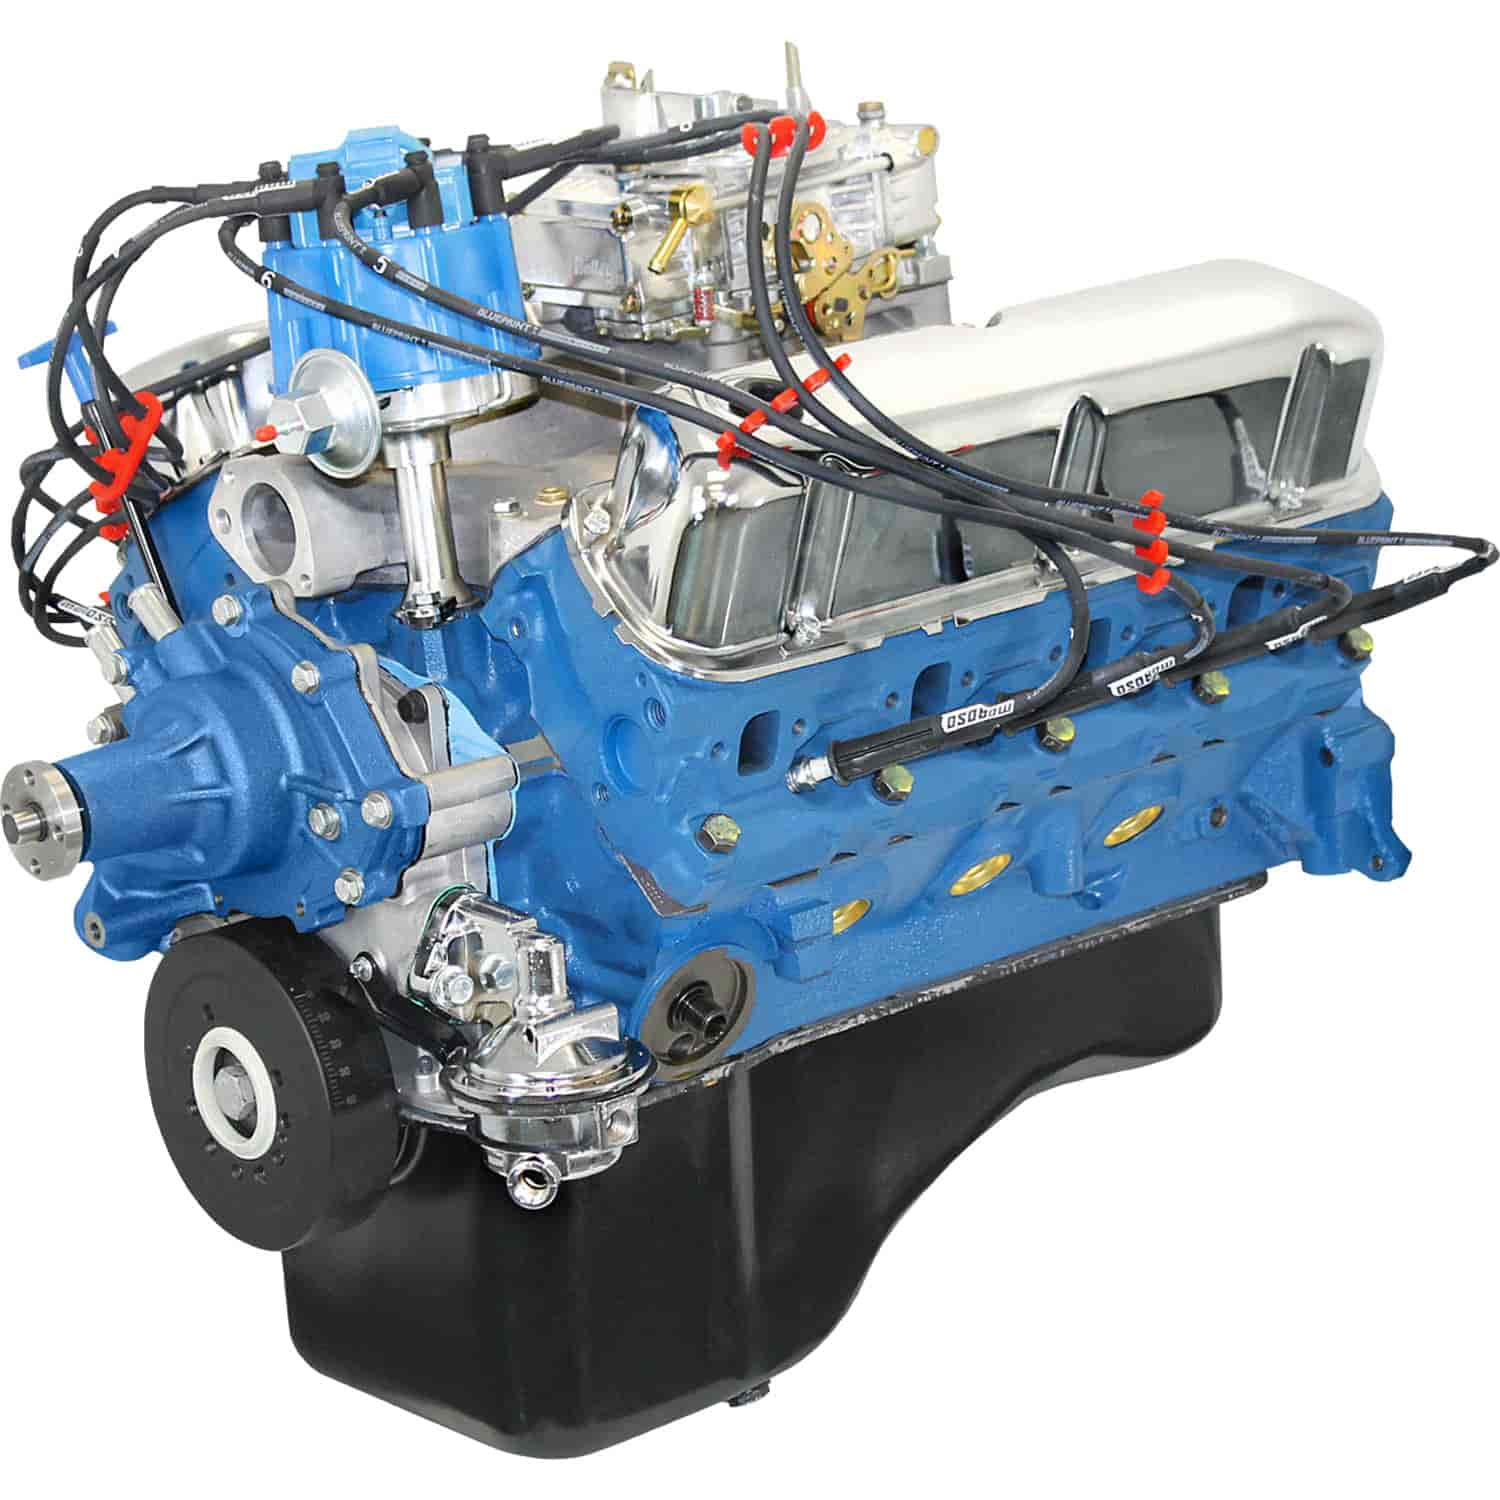 Ford Performance Engine Block 460 Svo Cast Iron: Blueprint Engines BP3024CTC: Ford Small Block 302ci Dress